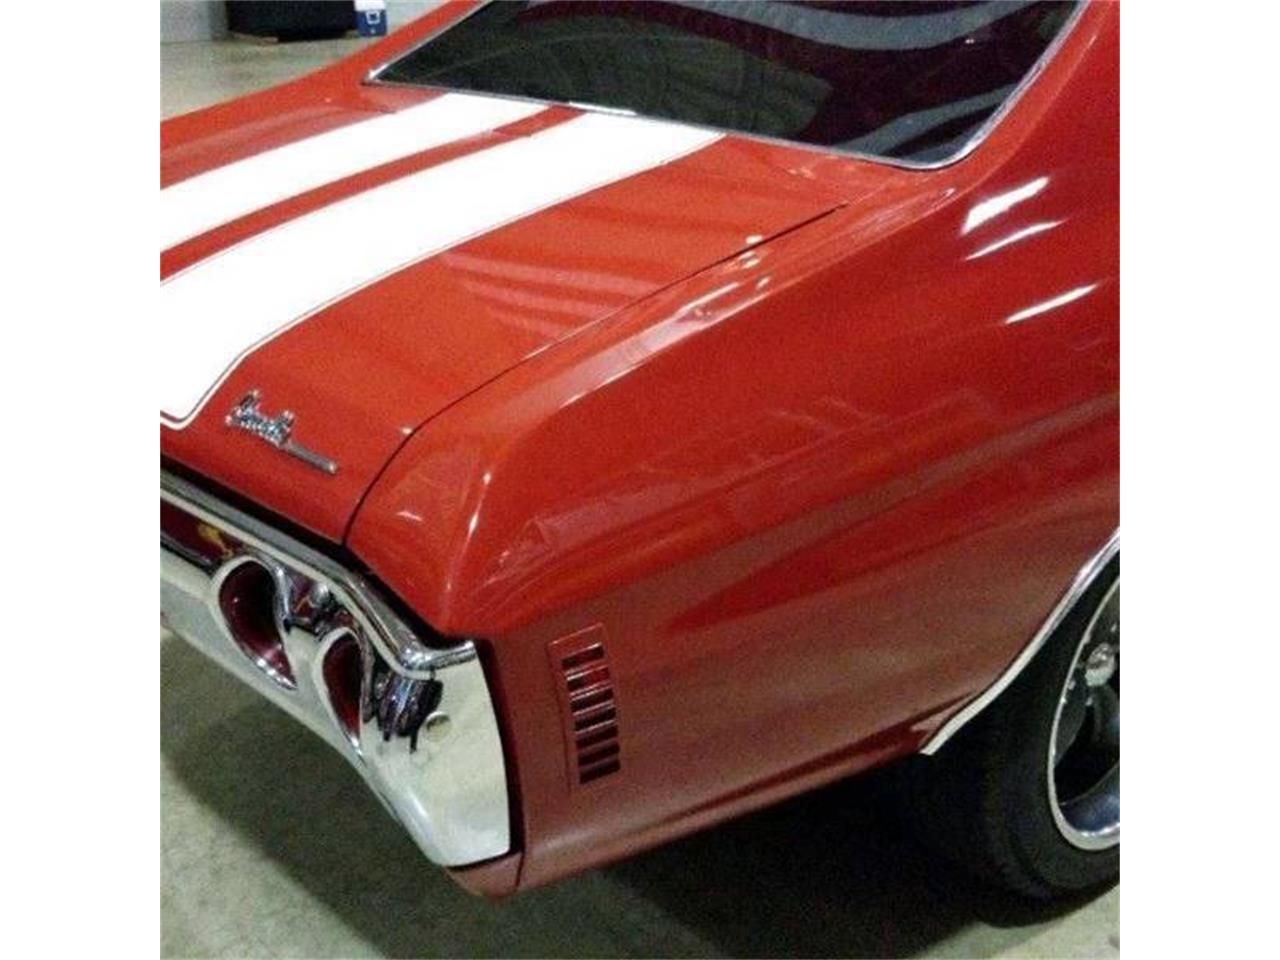 1971 Chevrolet Chevelle for sale in Long Island, NY – photo 15